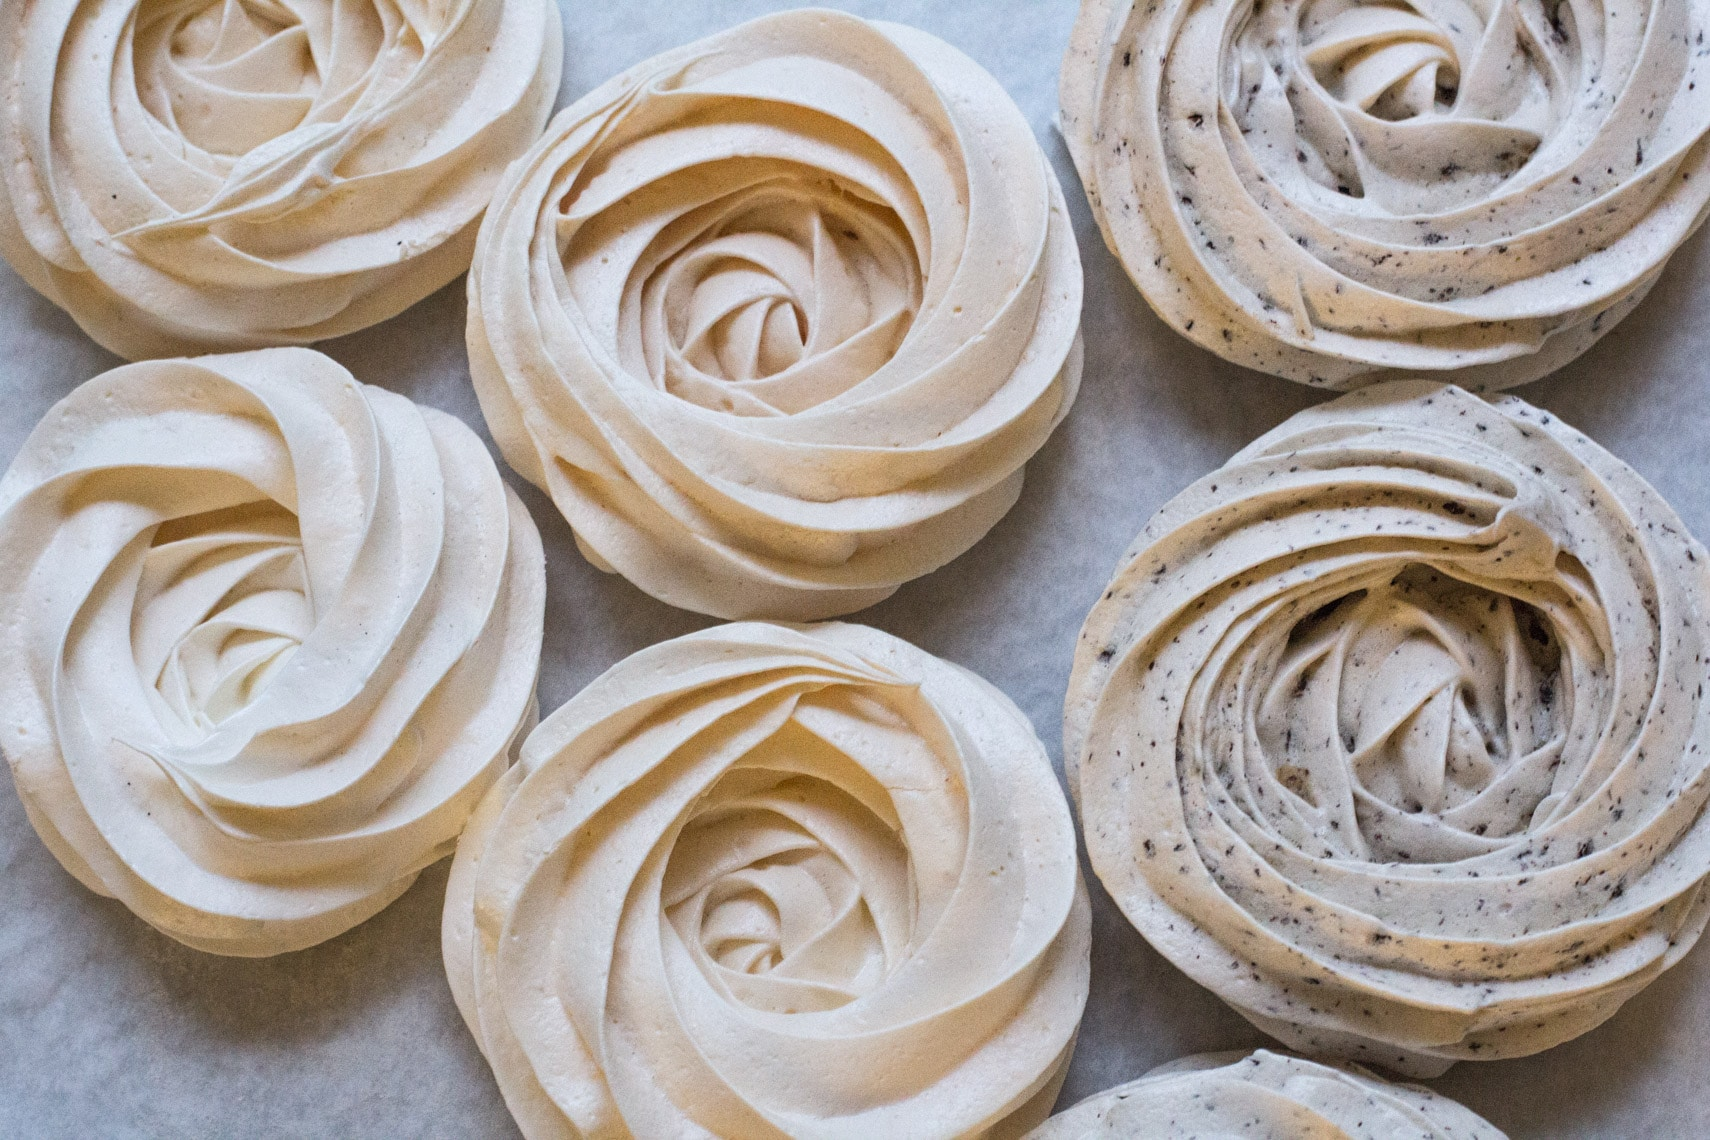 meringue nests piped on a sheet pan with parchment paper